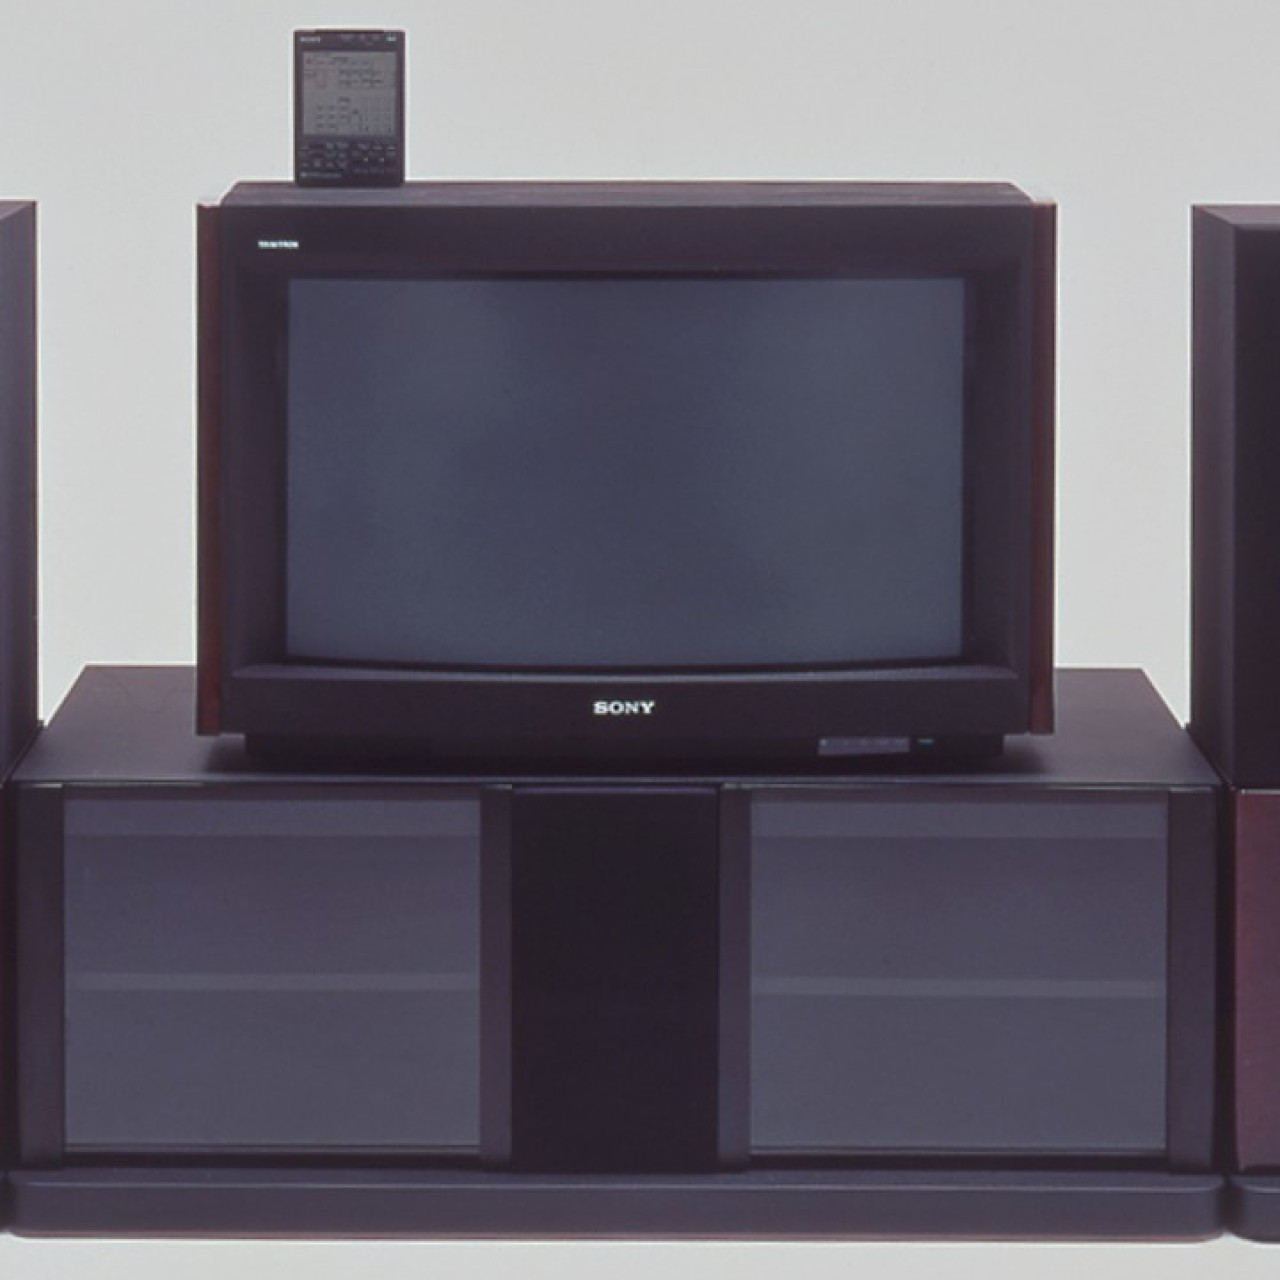 Feel old? 1990 Sony Trinitron TV now considered 'historical